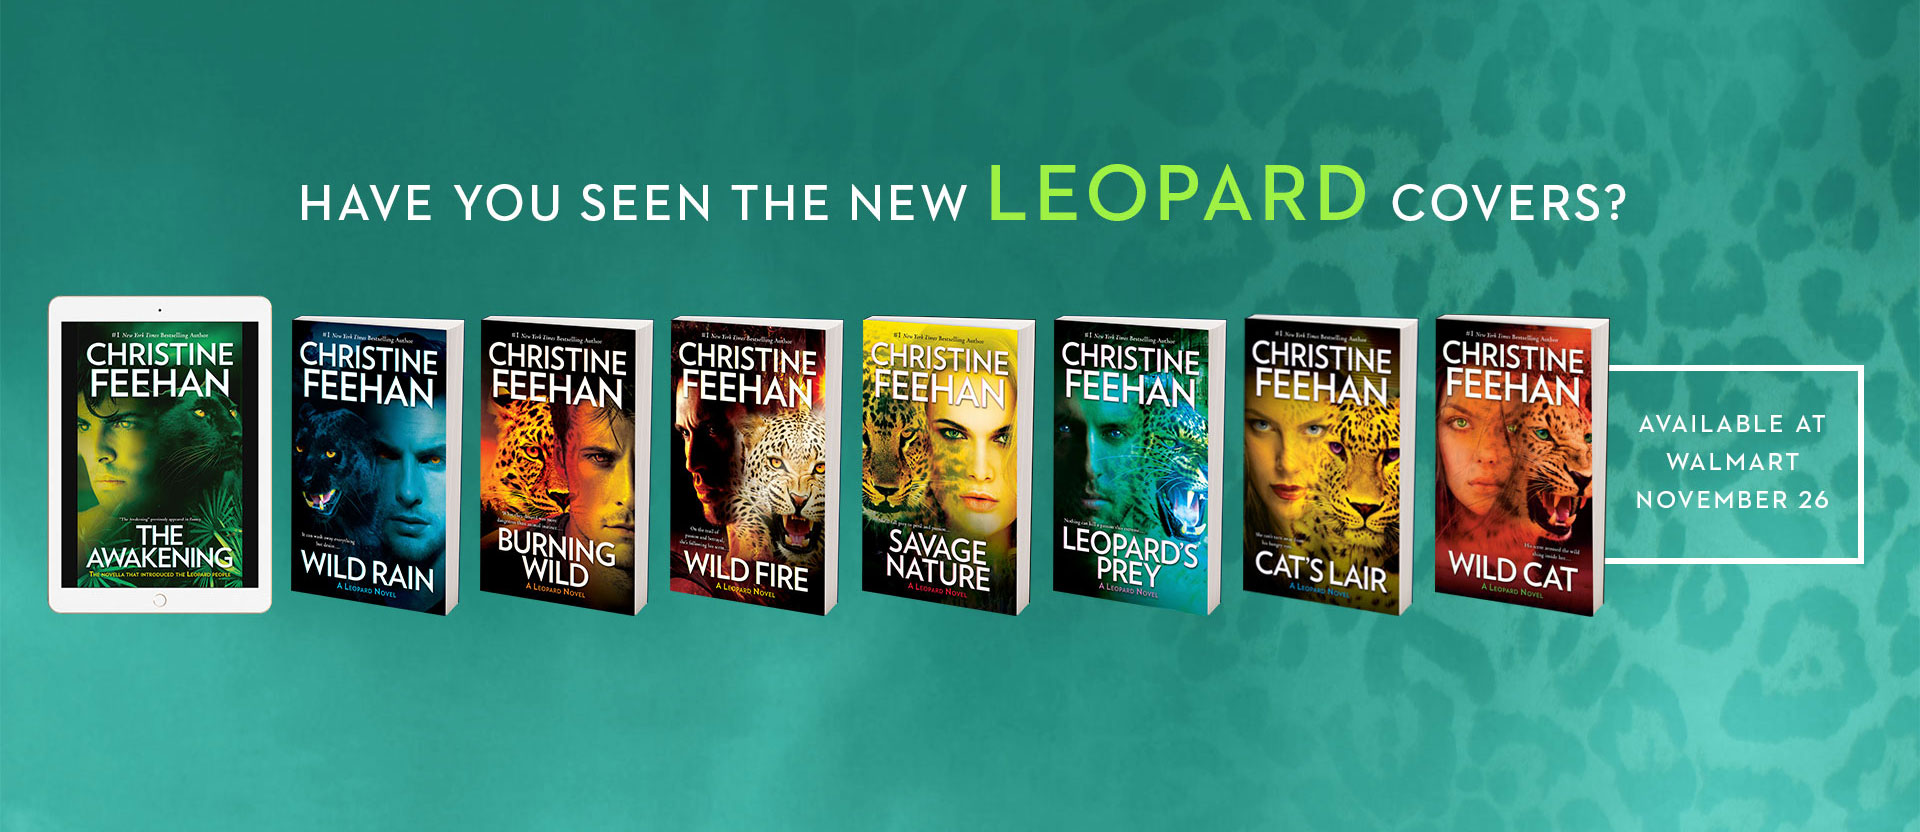 Leopard Series new covers at Walmart